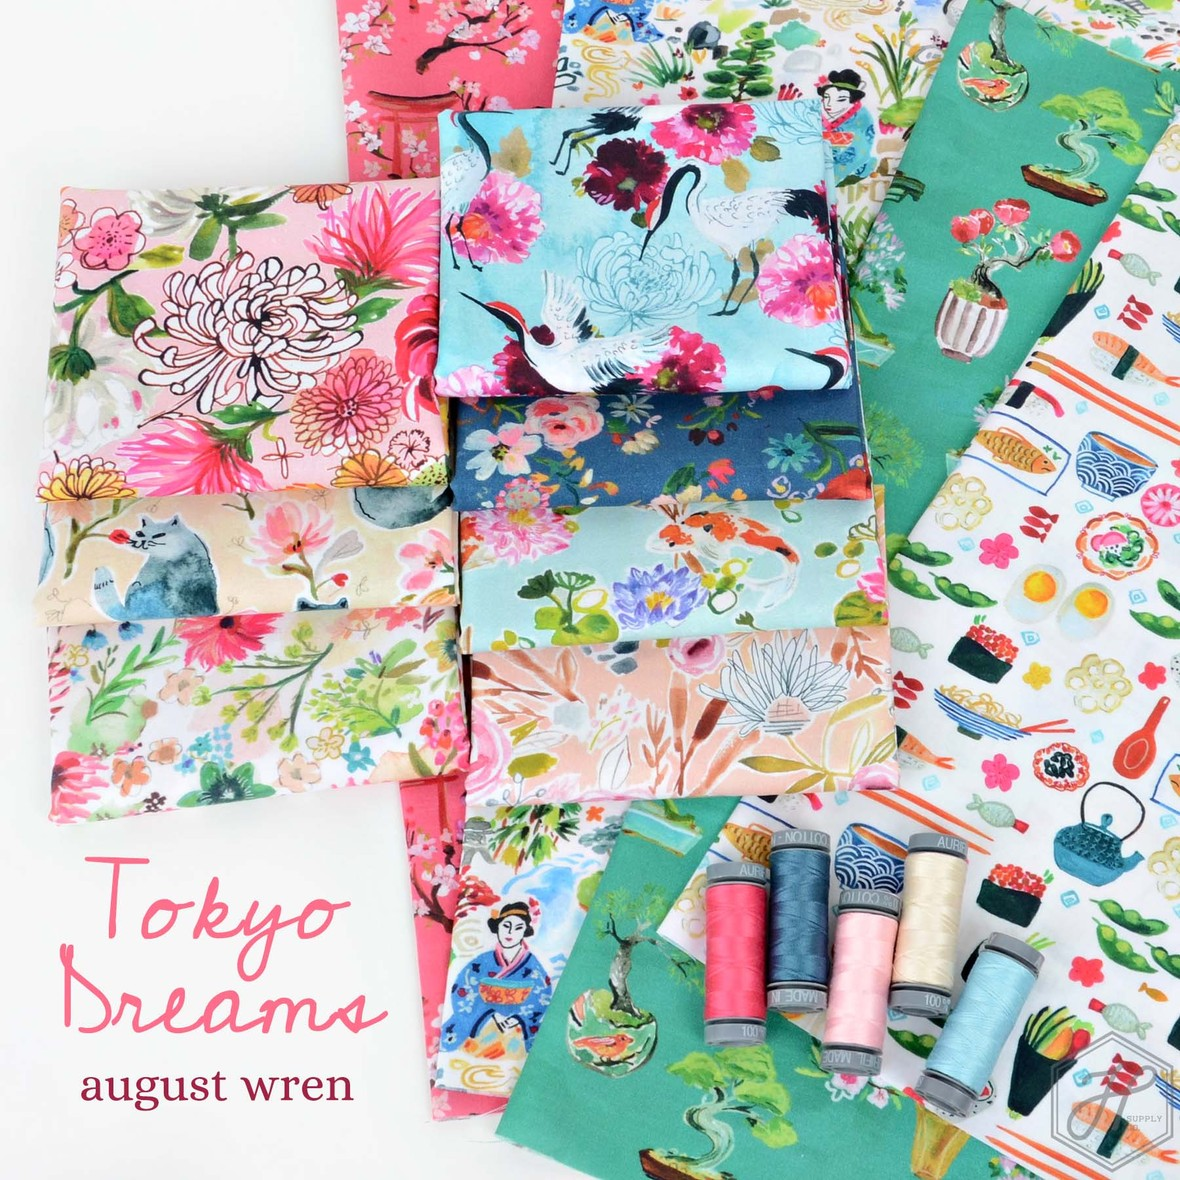 Tokyo Dreams Fabric August Wren at Hawthorne Supply Co.